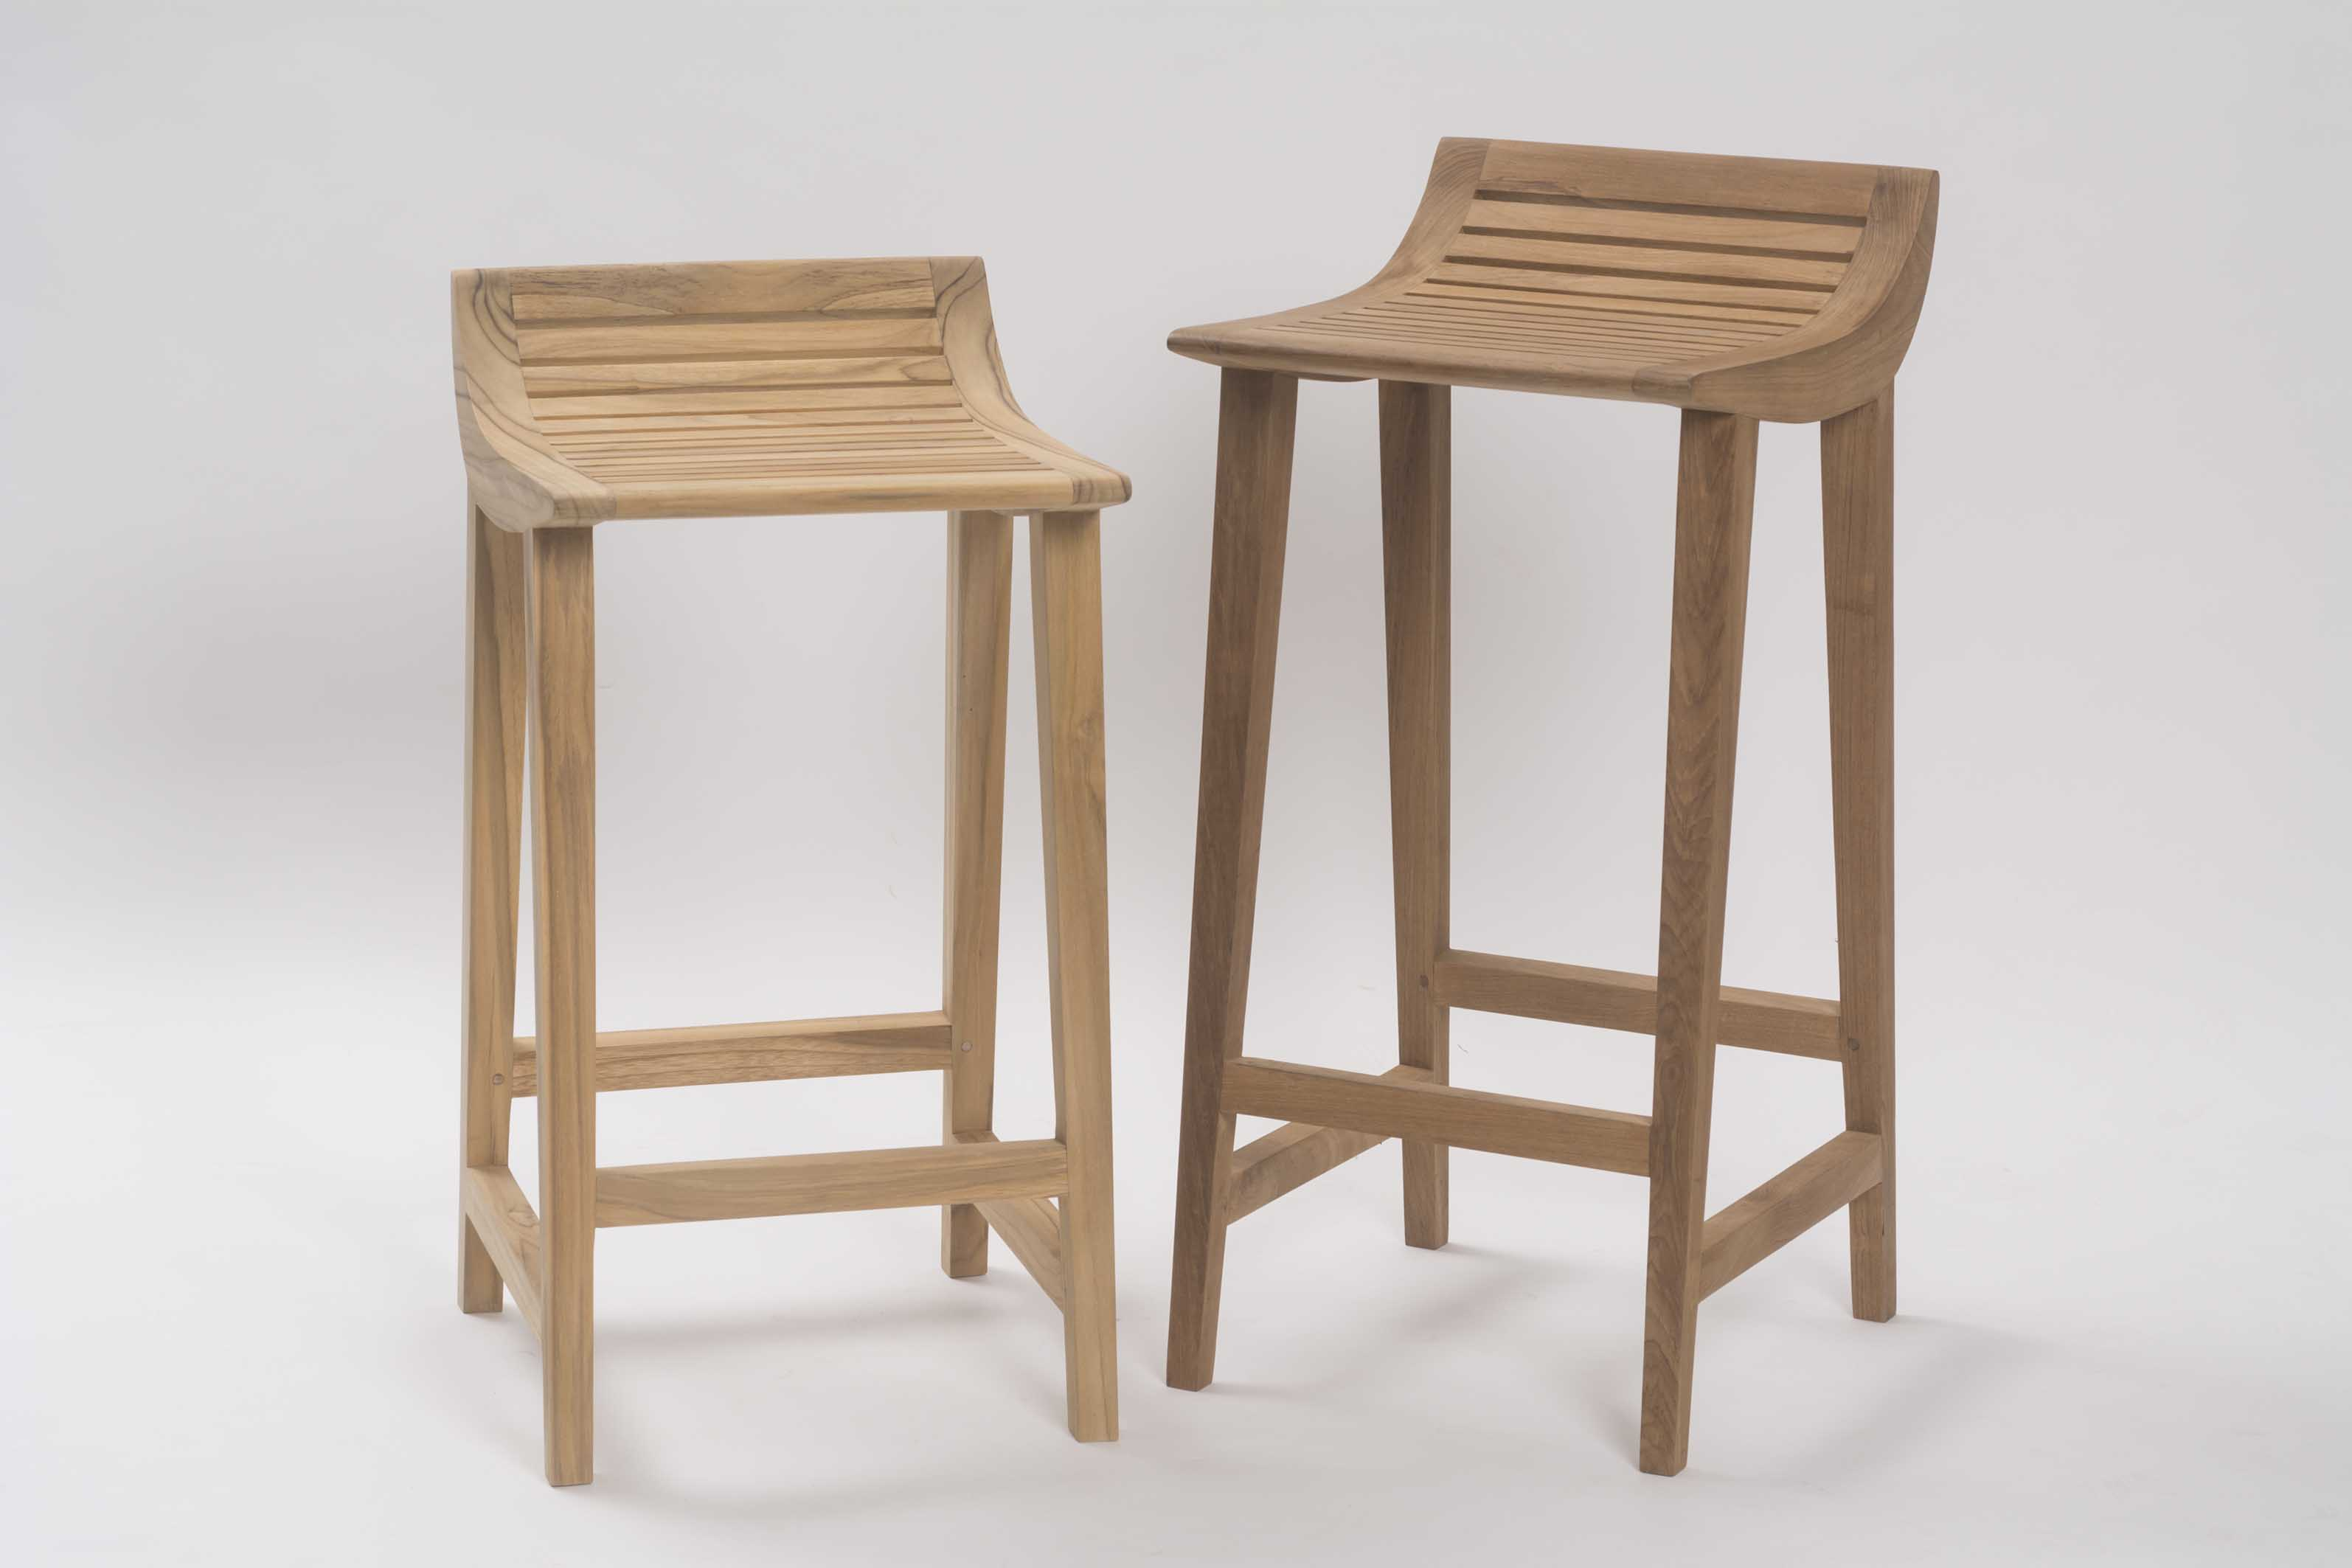 kitchen stool counter height table and chairs menton pr home detail comparison